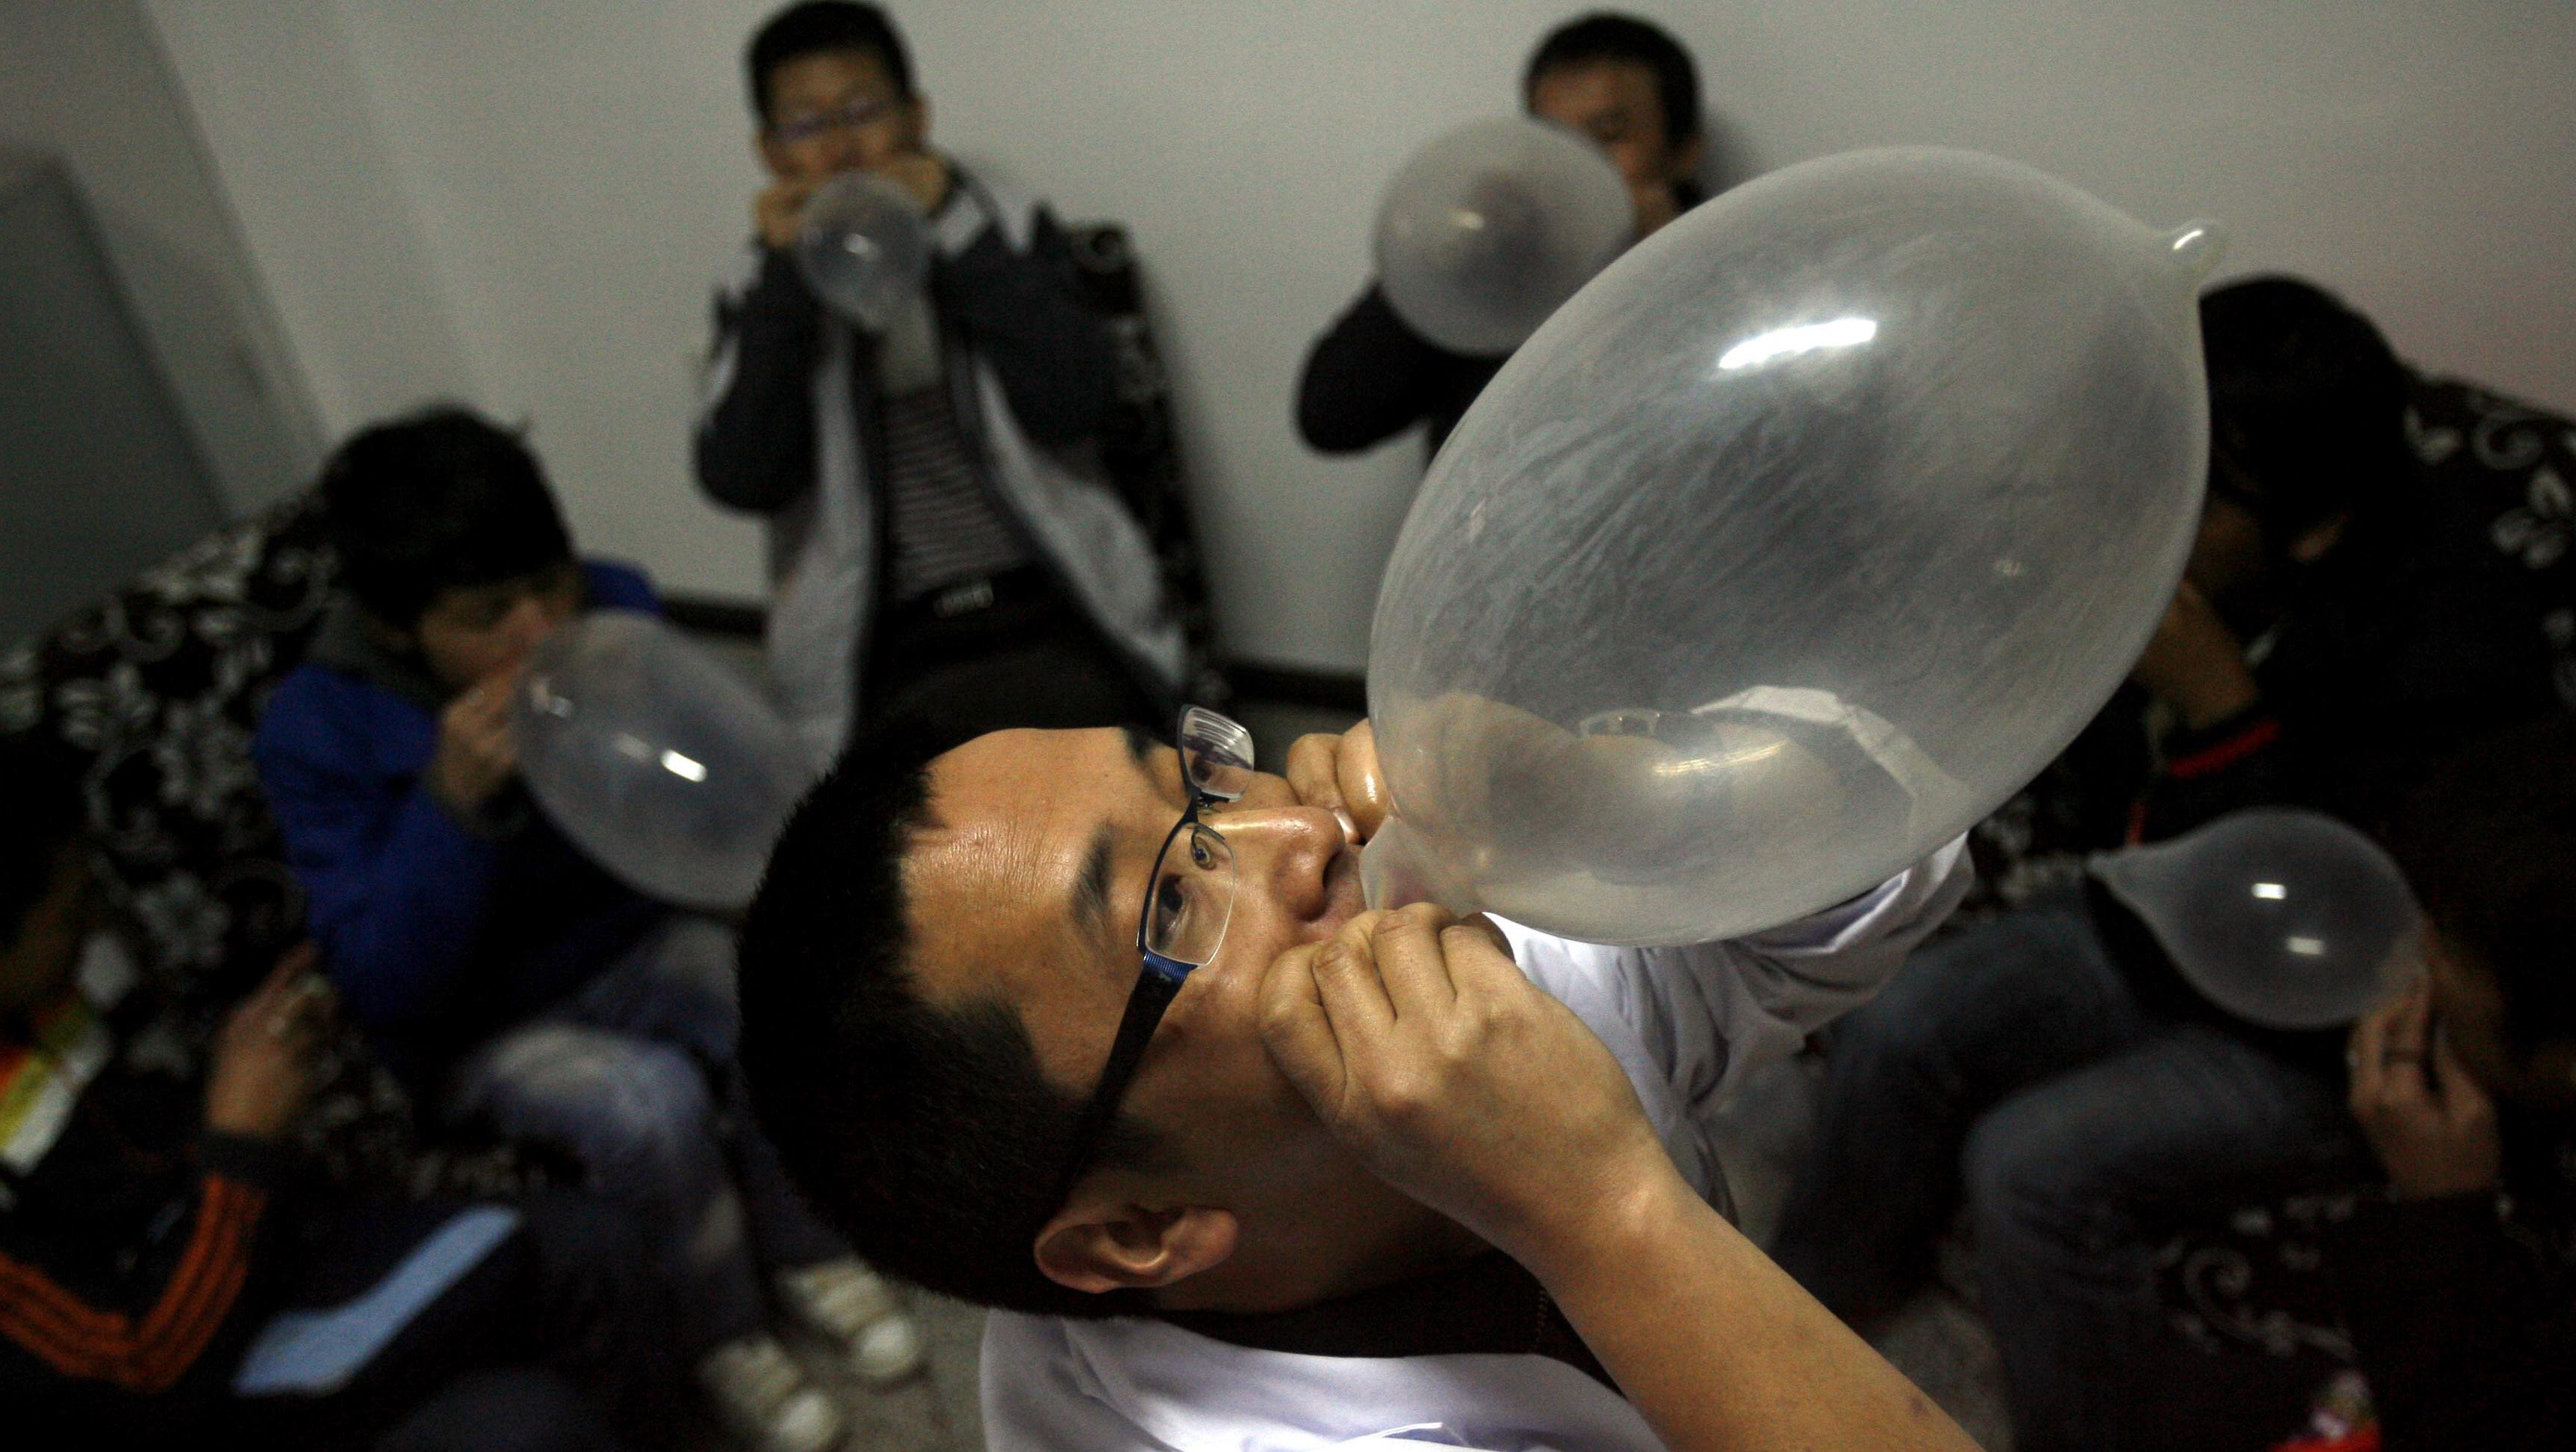 """Zhang Jianbo, a bar manager, blows up a condom as part of an event encouraging condom use by homosexuals in Dali, Yunnan province, November 26, 2009. Local authorities in southwestern Yunnan province are to convert the bar into a """"common room for partner education"""" for the gay community, as part of the official initiative to break social stigma against gay men, days after the health minister warned that homosexual sex has become a main factor in the spread of AIDS in the nation, Xinhua News Agency reported. Picture taken November 26, 2009. REUTERS/Stringer"""